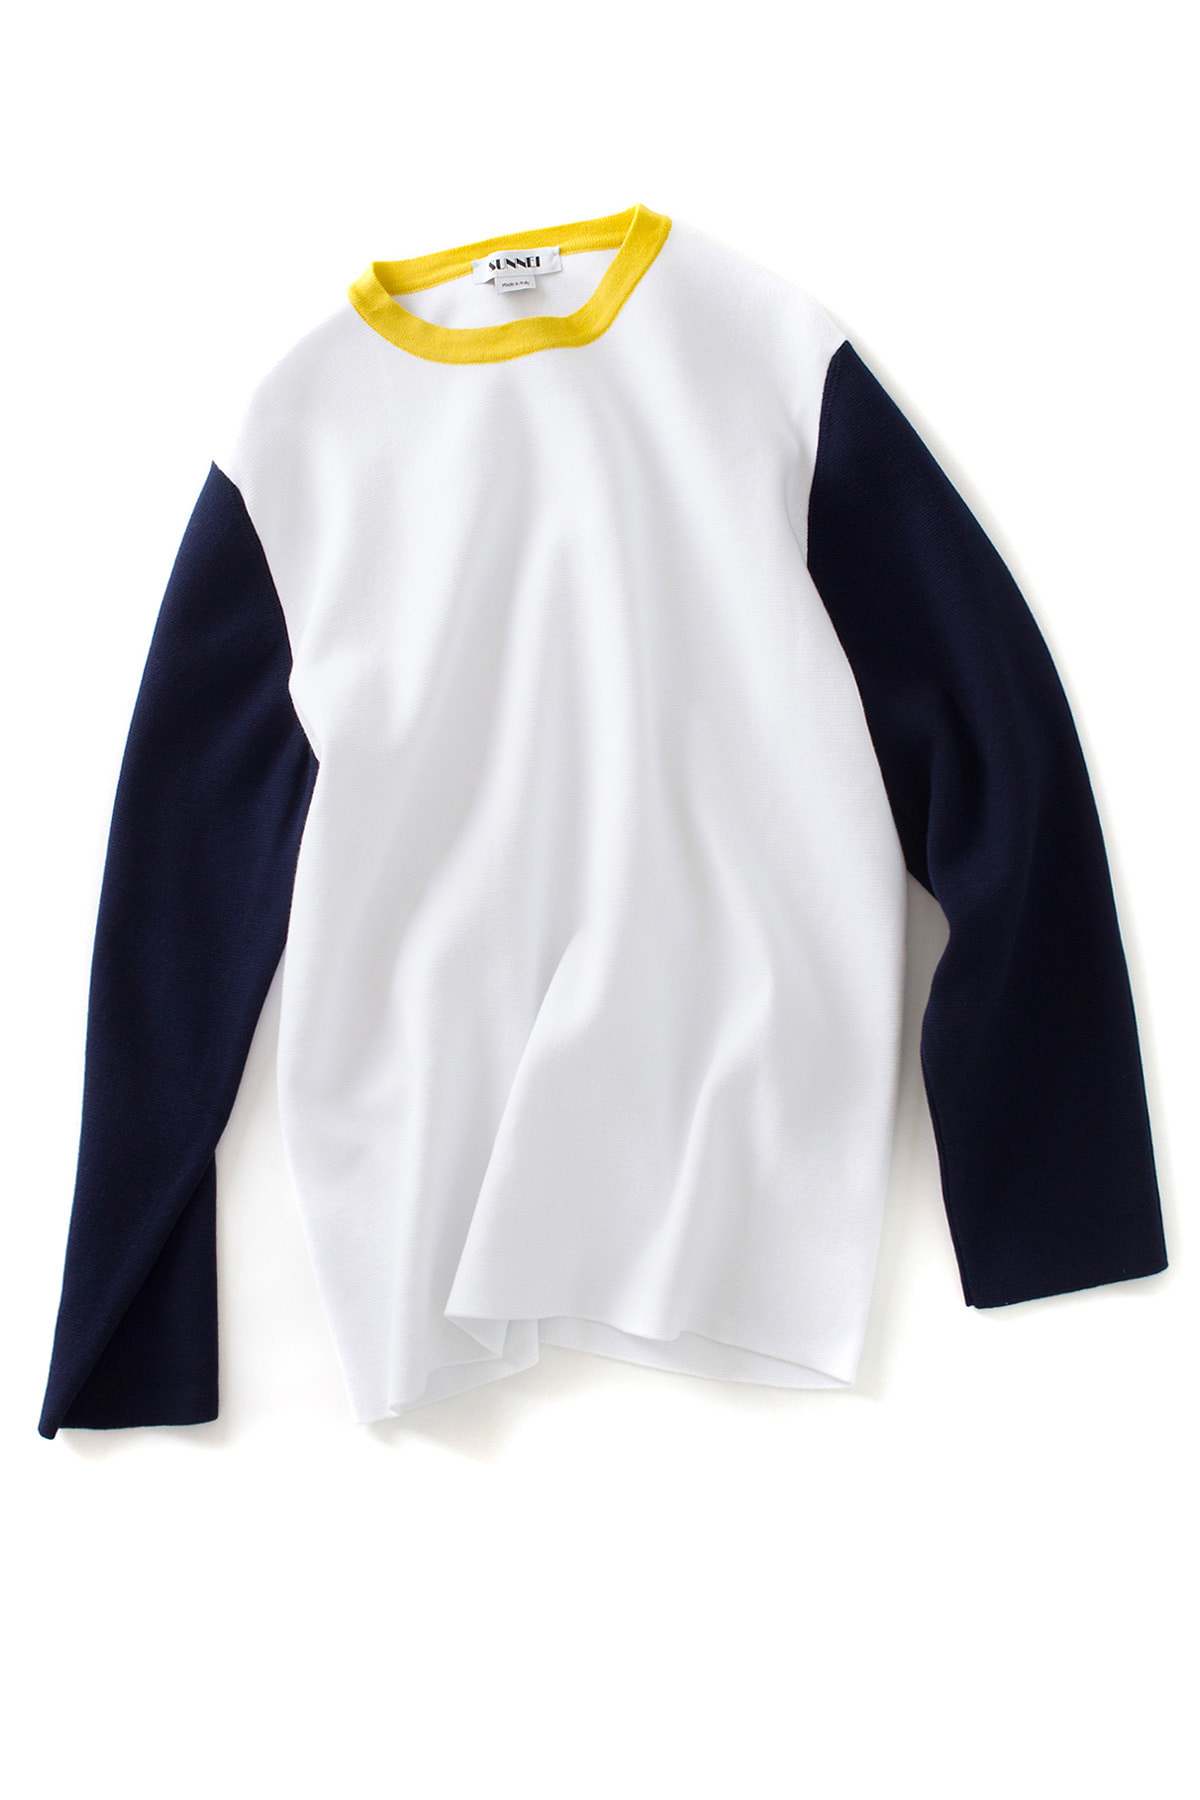 SUNNEI : Long Sleeve Knit T-Shirt  (White / Blue / Yellow)